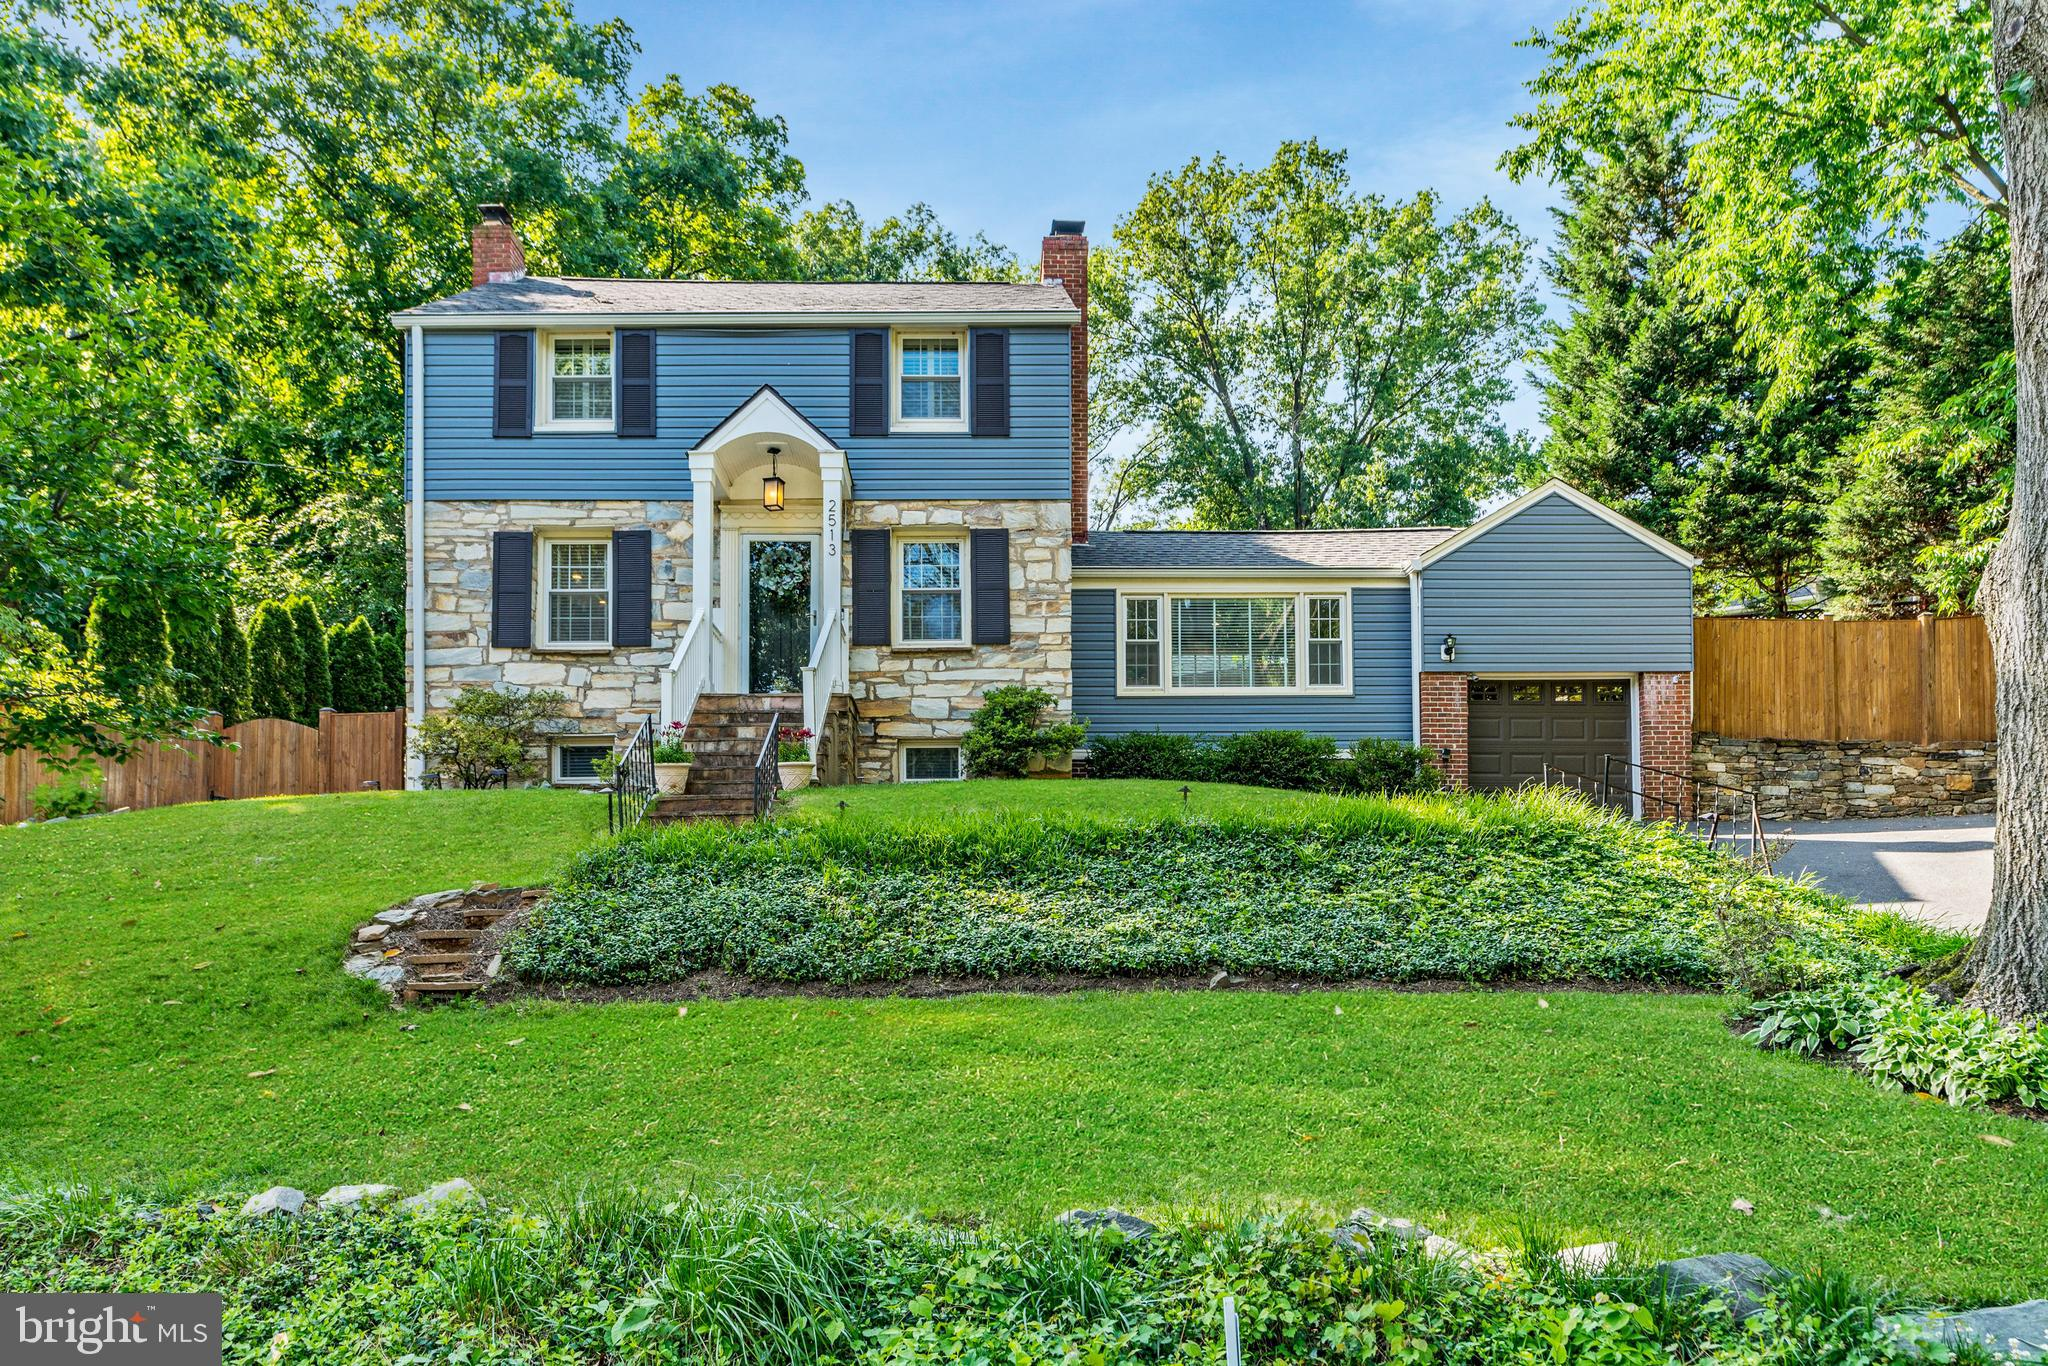 Arlington VA Woodmont Homes For Sale | | IDXLord and